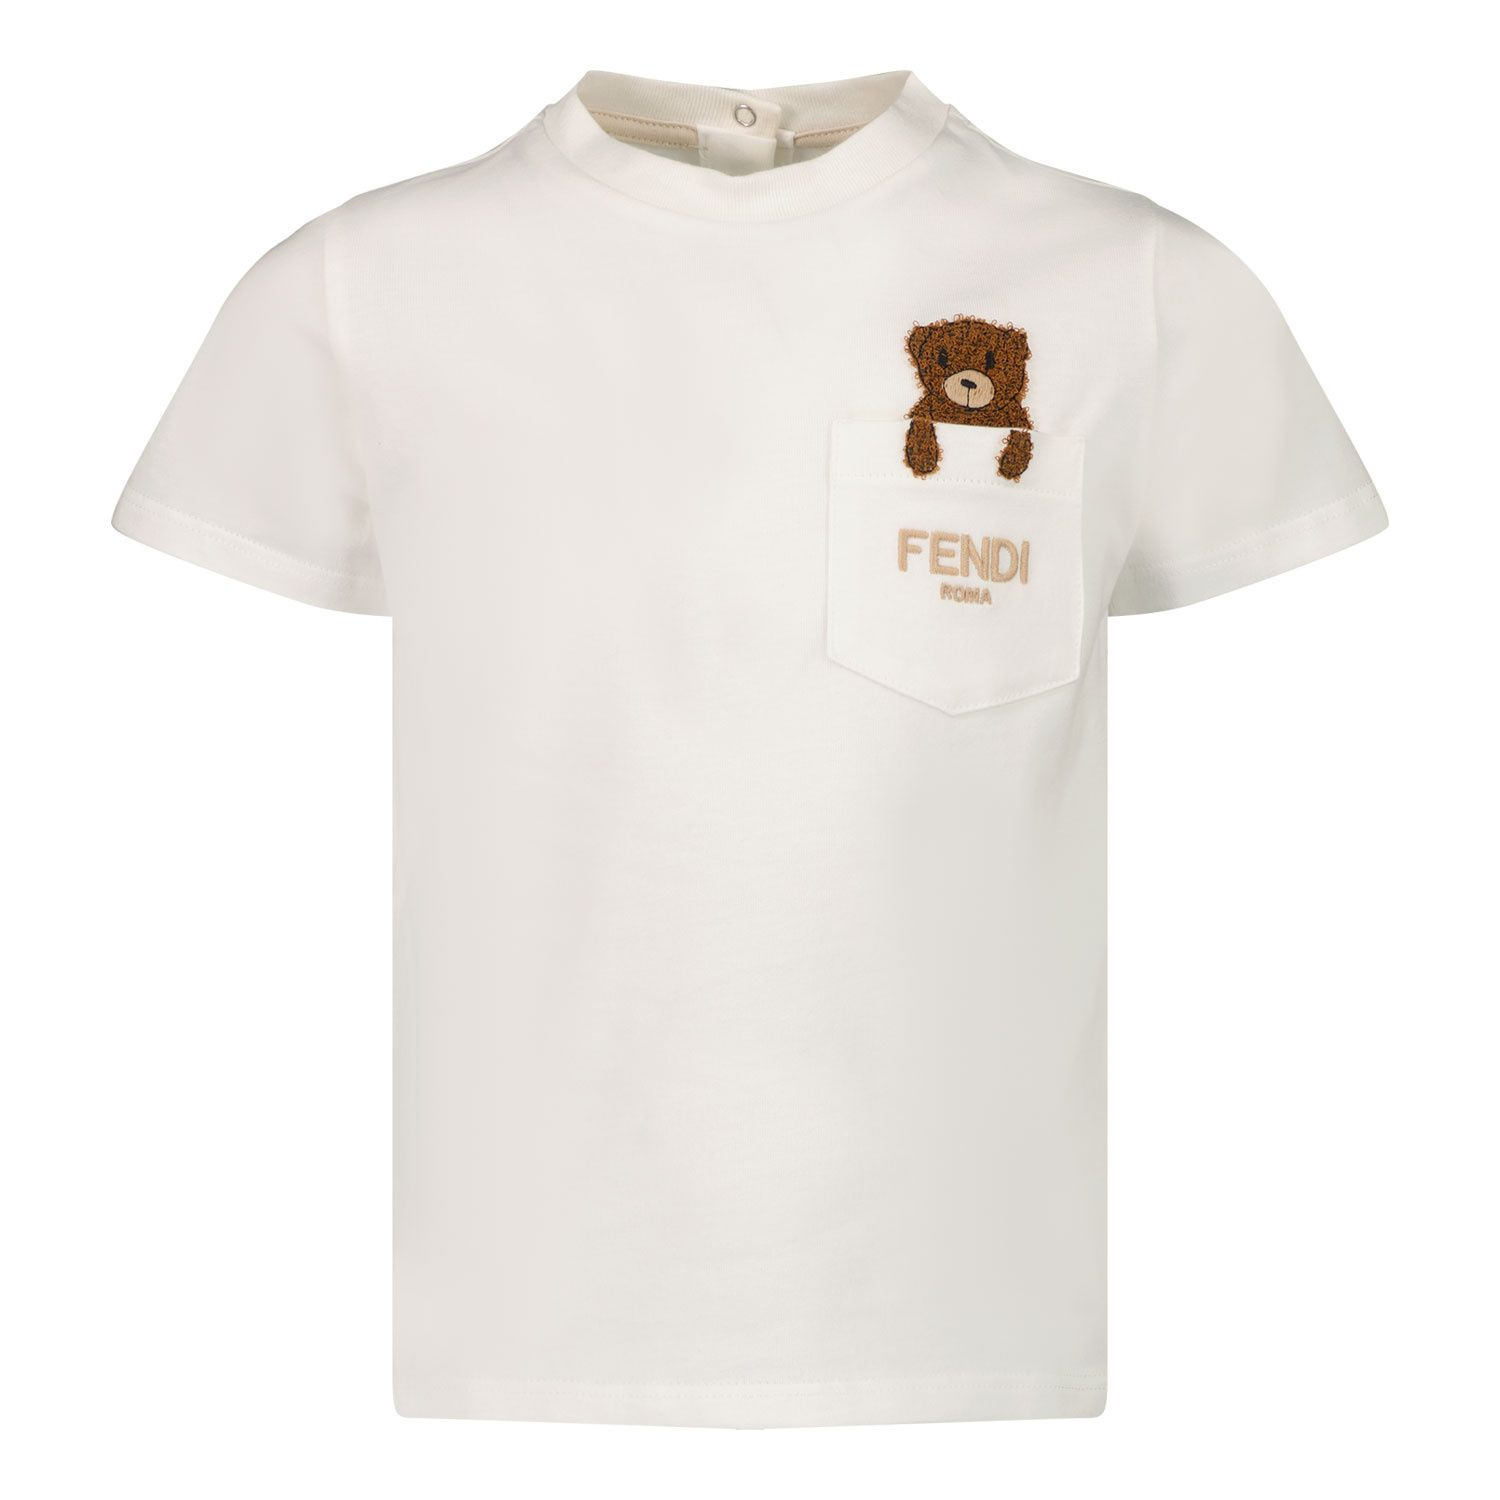 Picture of Fendi BUI031 ST8 baby shirt white